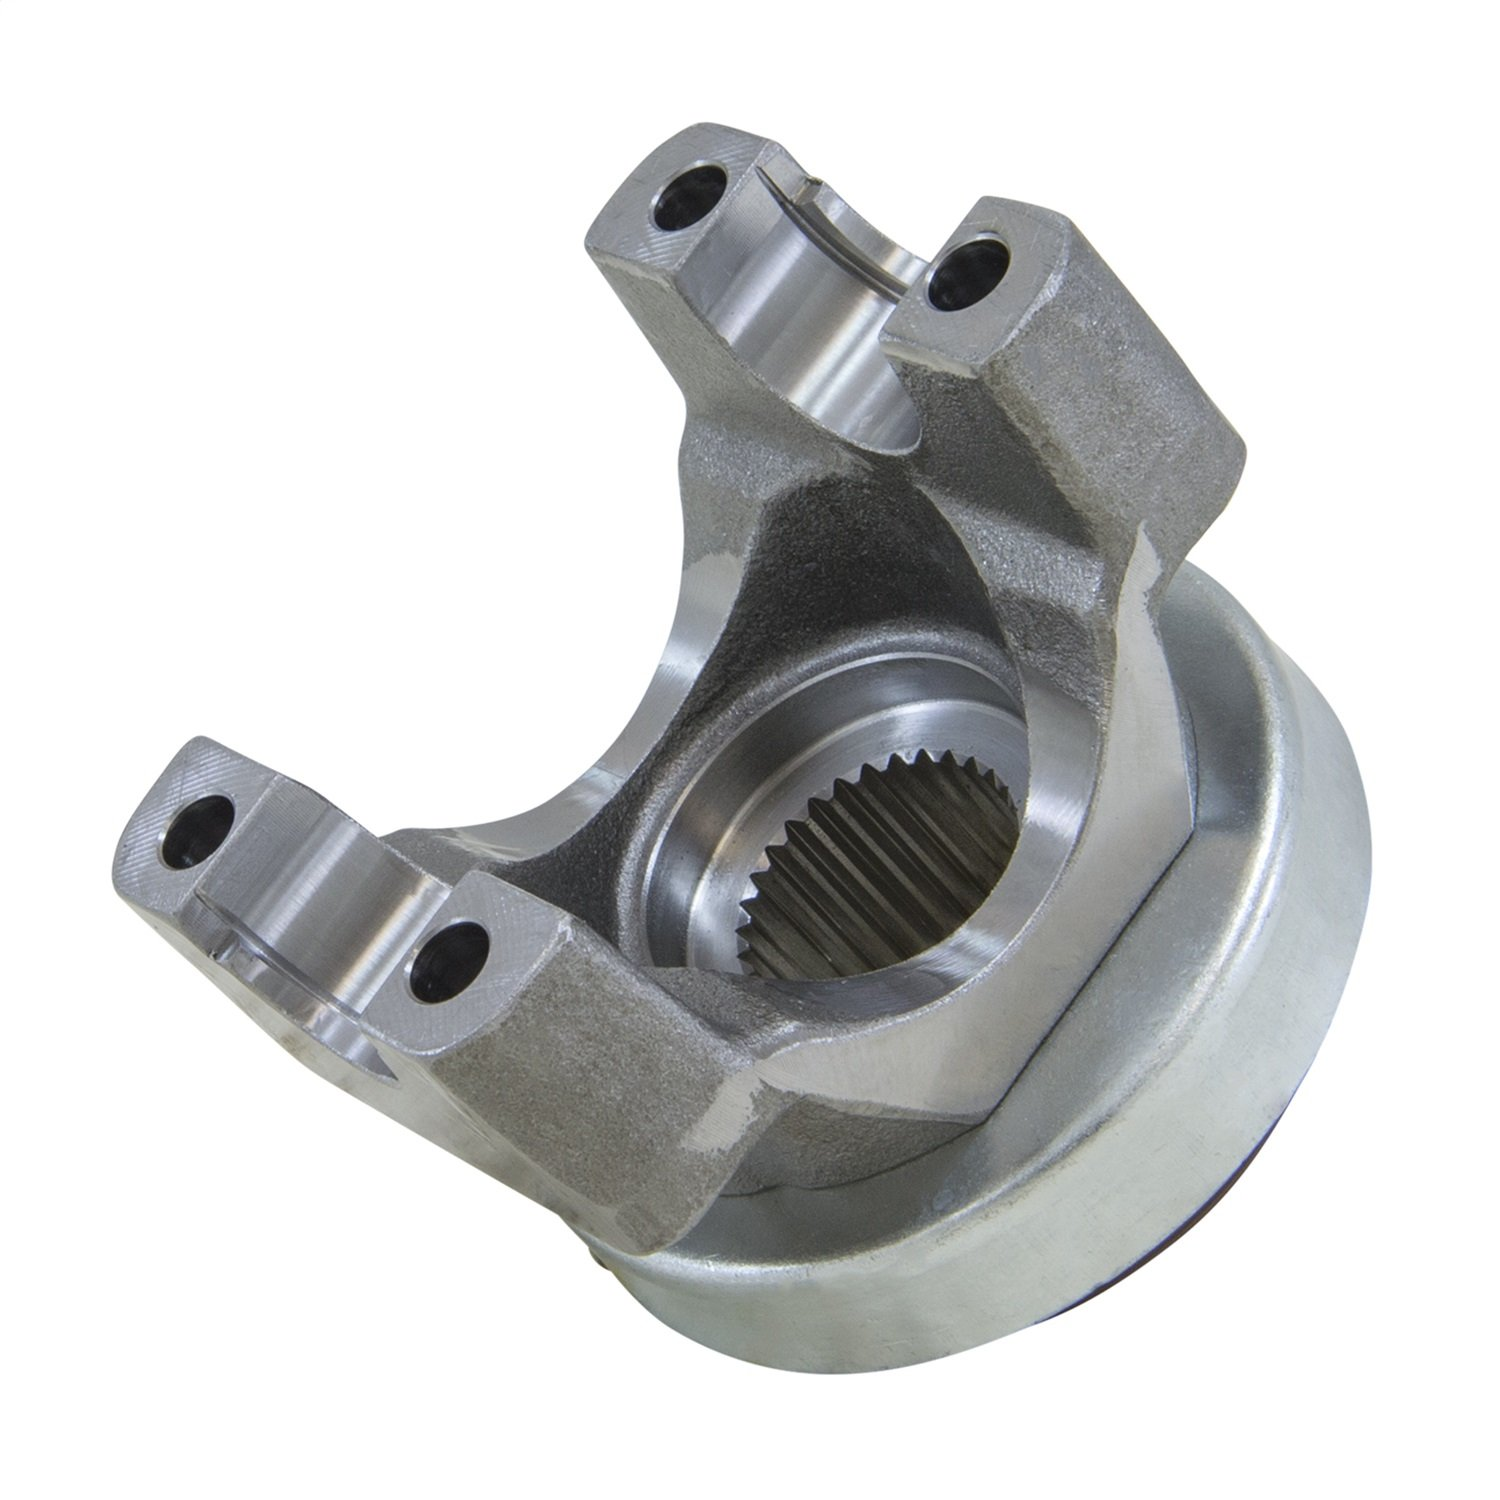 Yukon Gear & Axle (YY GM15579602) Yoke for GM 9.5 Differential with a 1350 U/joint size. 3.625'' snap ring span, 1.188'' cap diameter.